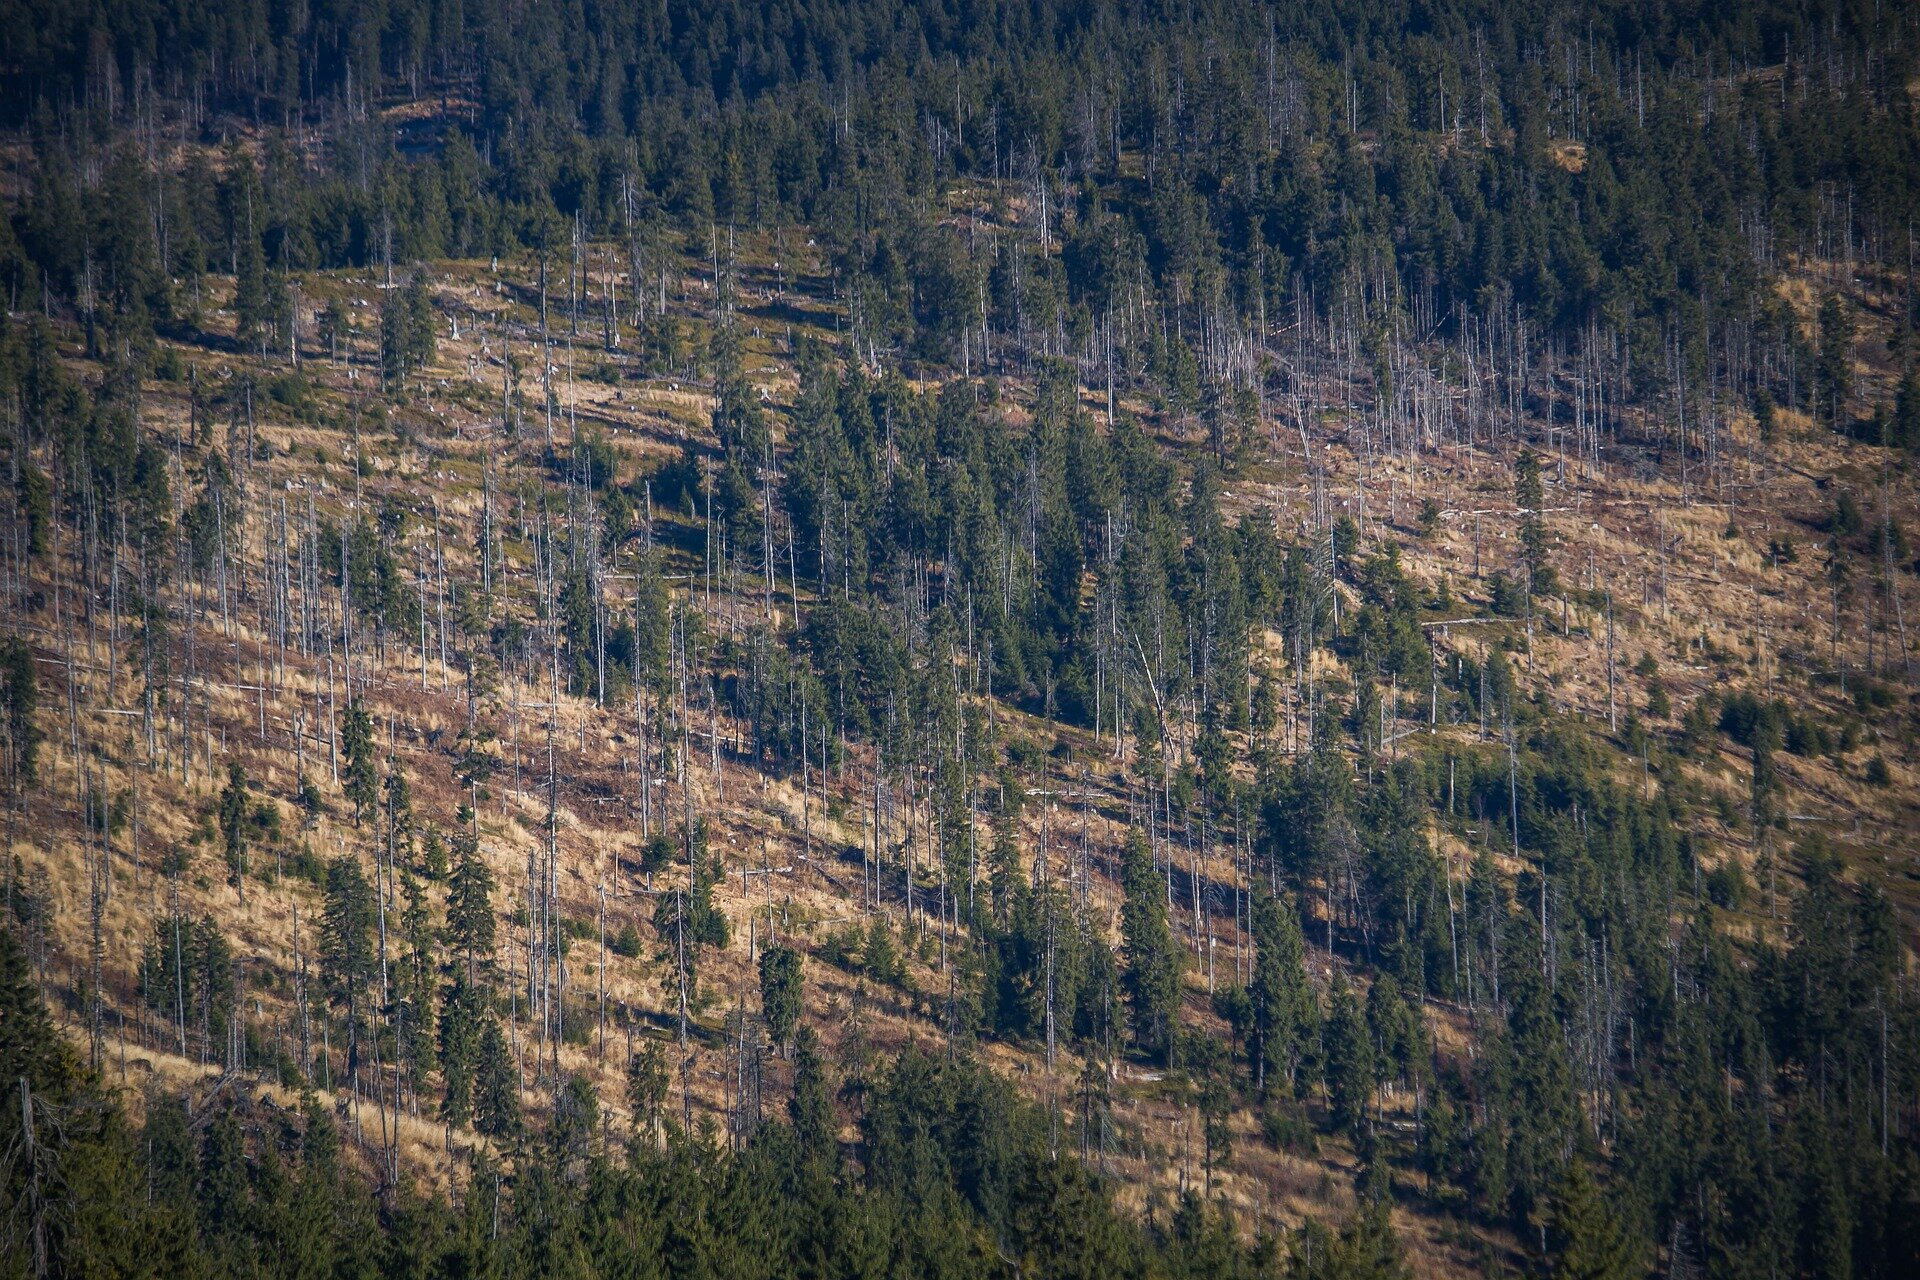 More inclusive and coherent global action on deforestation urgently needed